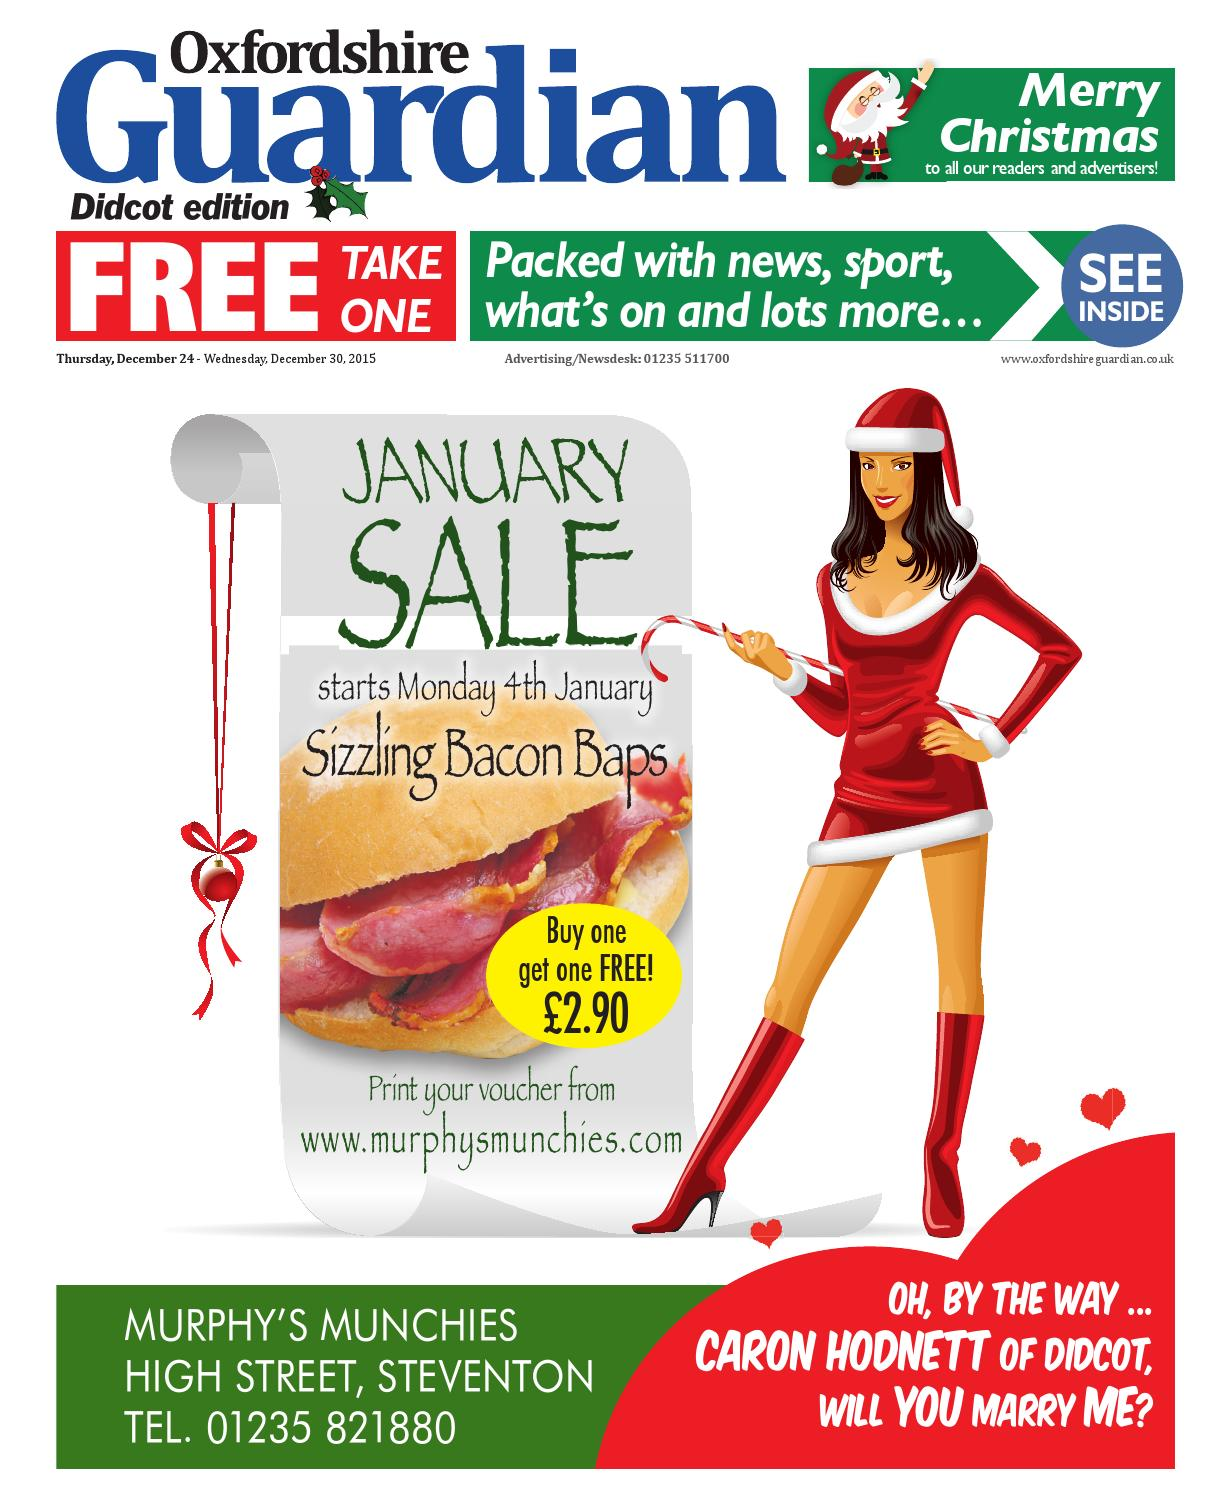 24 december 2015 oxfordshire guardian didcot by Taylor Newspapers issuu